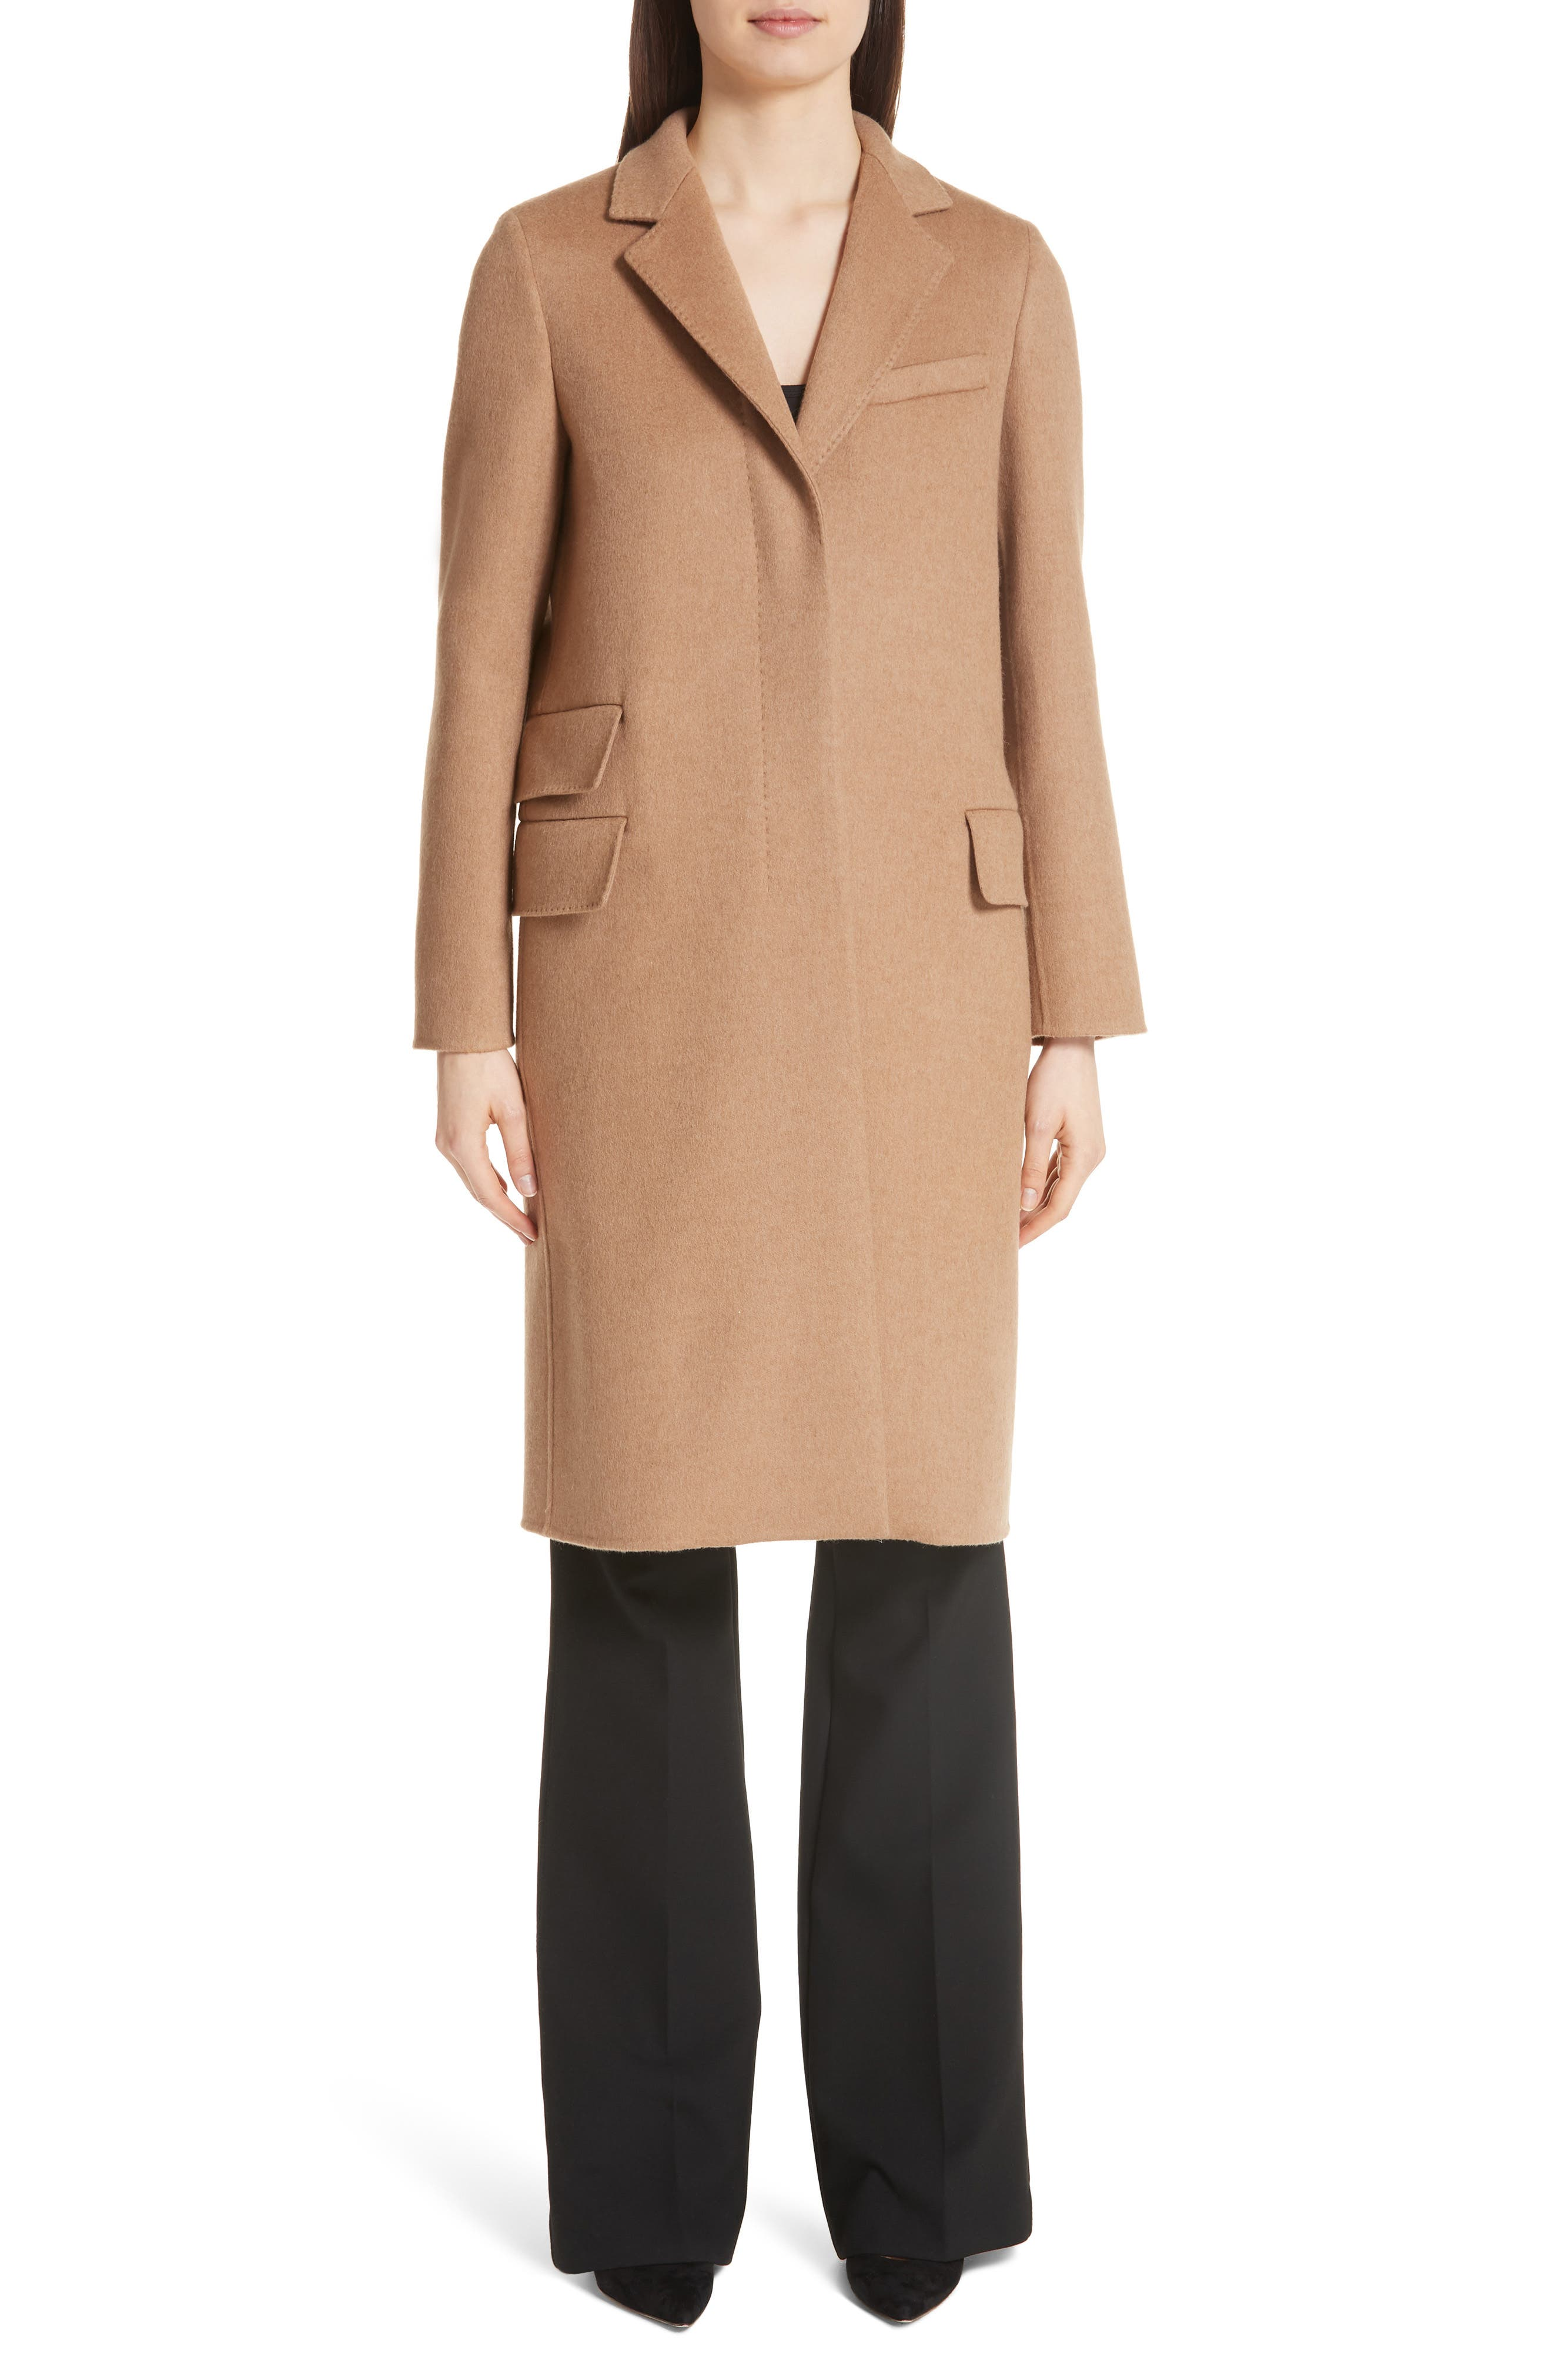 Aureo Camel Hair Coat,                             Main thumbnail 1, color,                             232